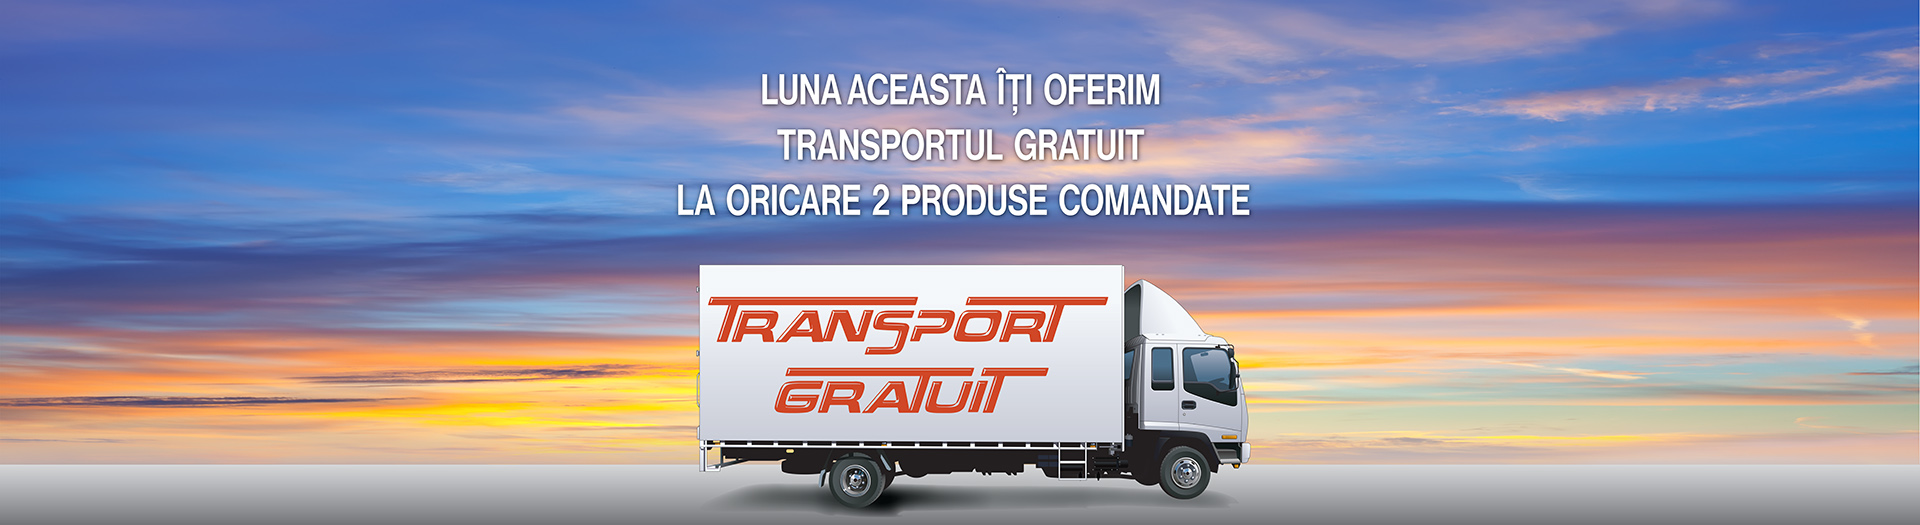 Promo transport gratuit